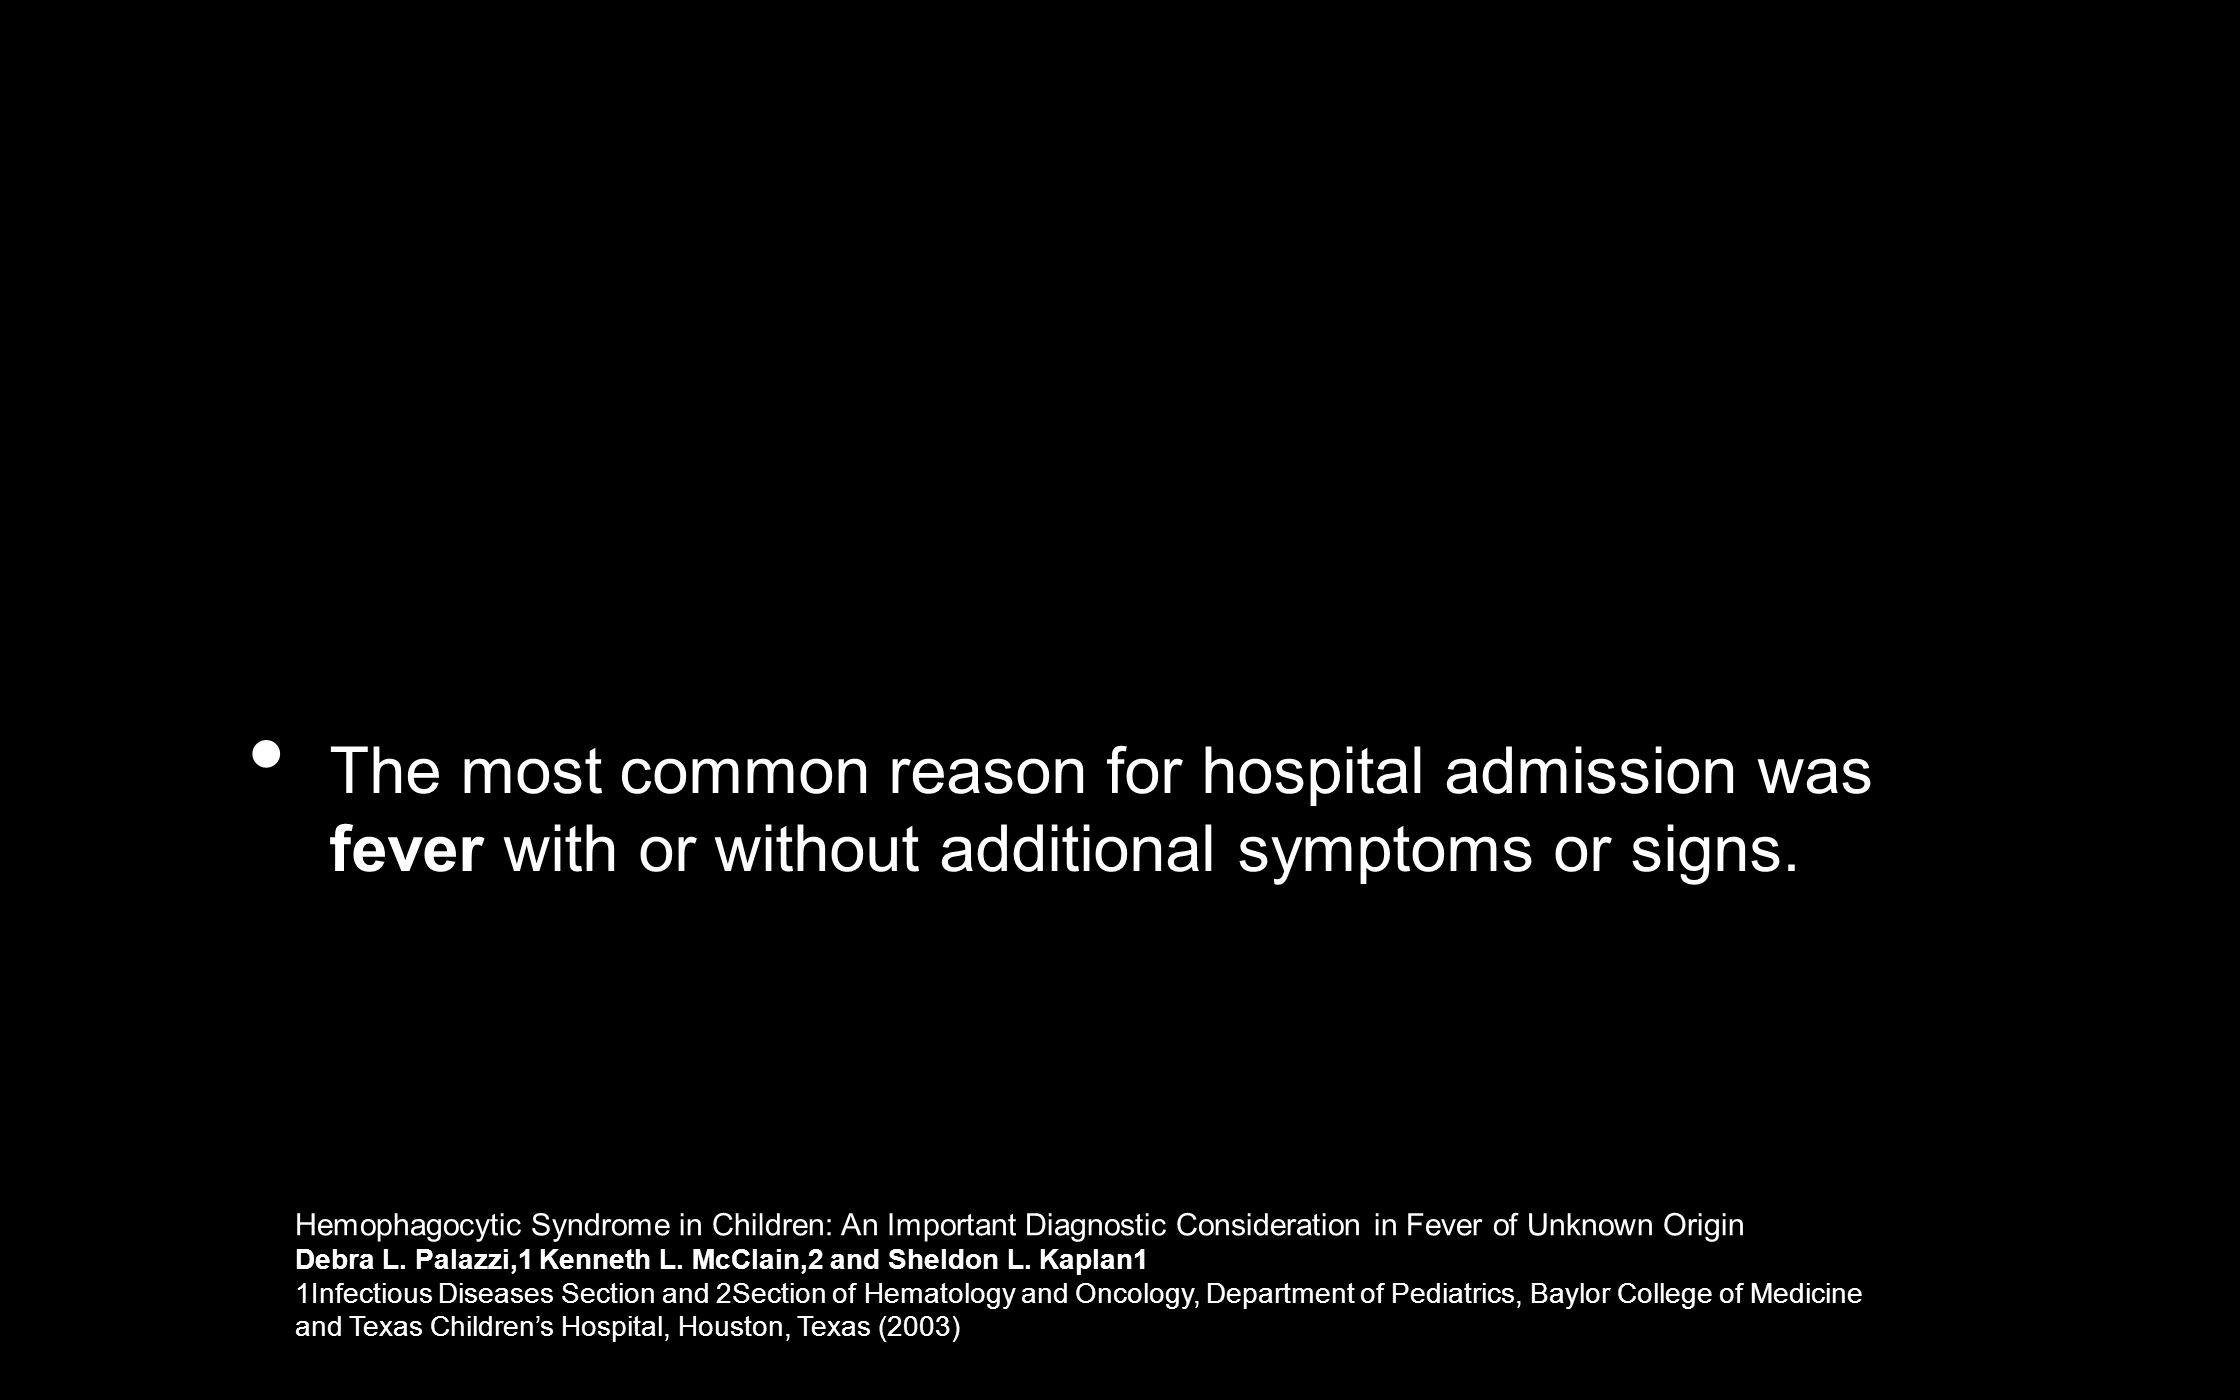 The most common reason for hospital admission was fever with or without additional symptoms or signs.